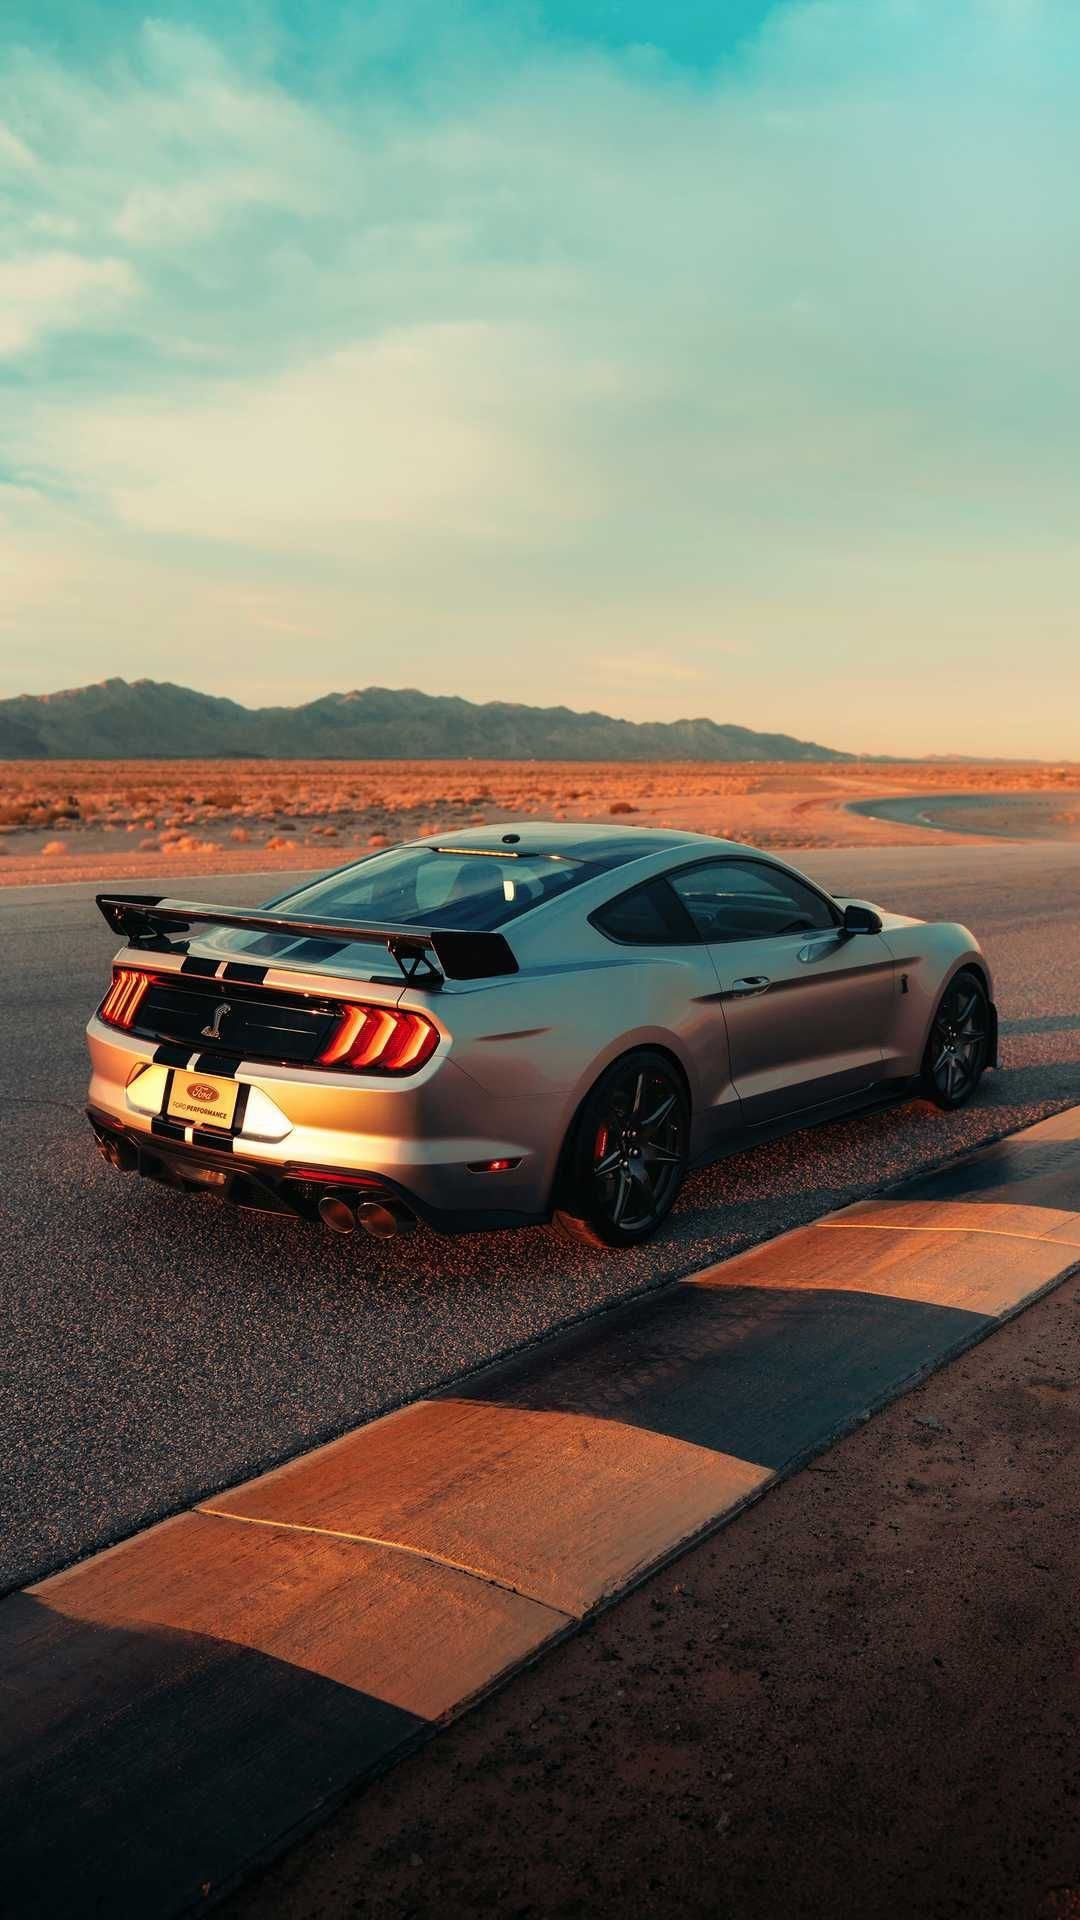 New 2020 Ford Mustang Shelby Gt500 Silver Side Ford Mustang Shelby Gt500 Ford Mustang Shelby Shelby Gt500